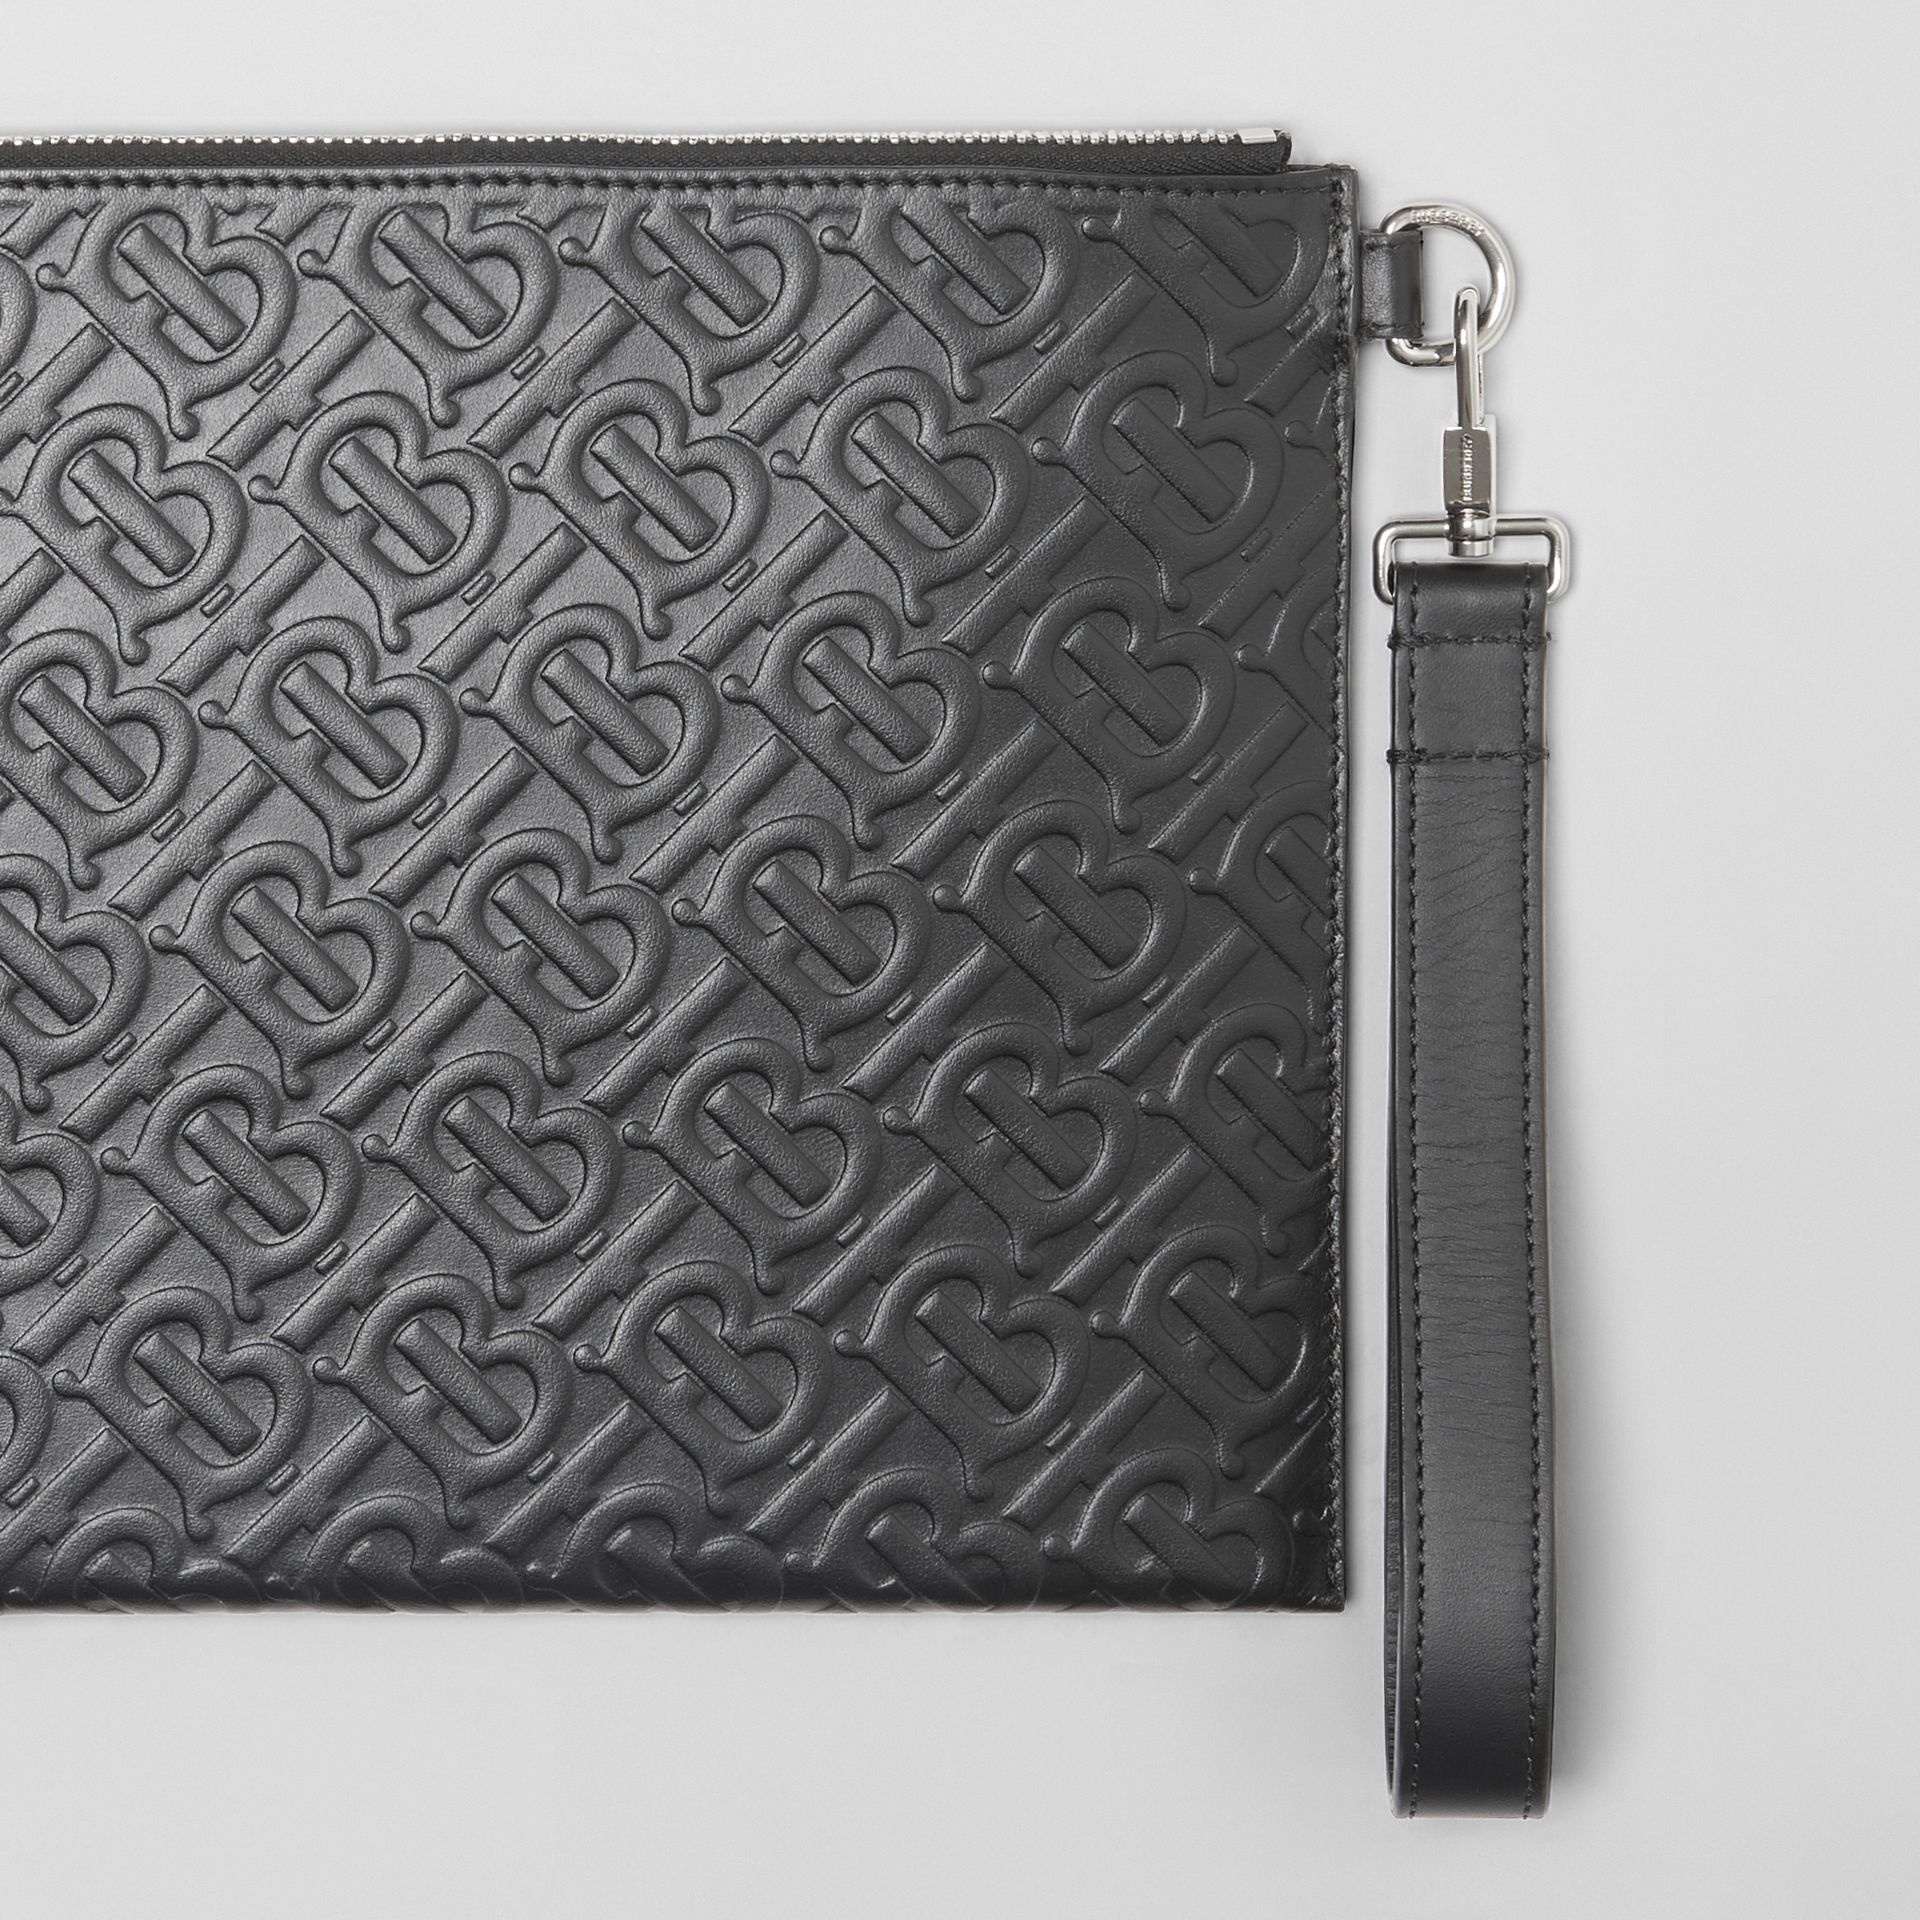 Monogram Leather Zip Pouch in Black | Burberry - gallery image 1